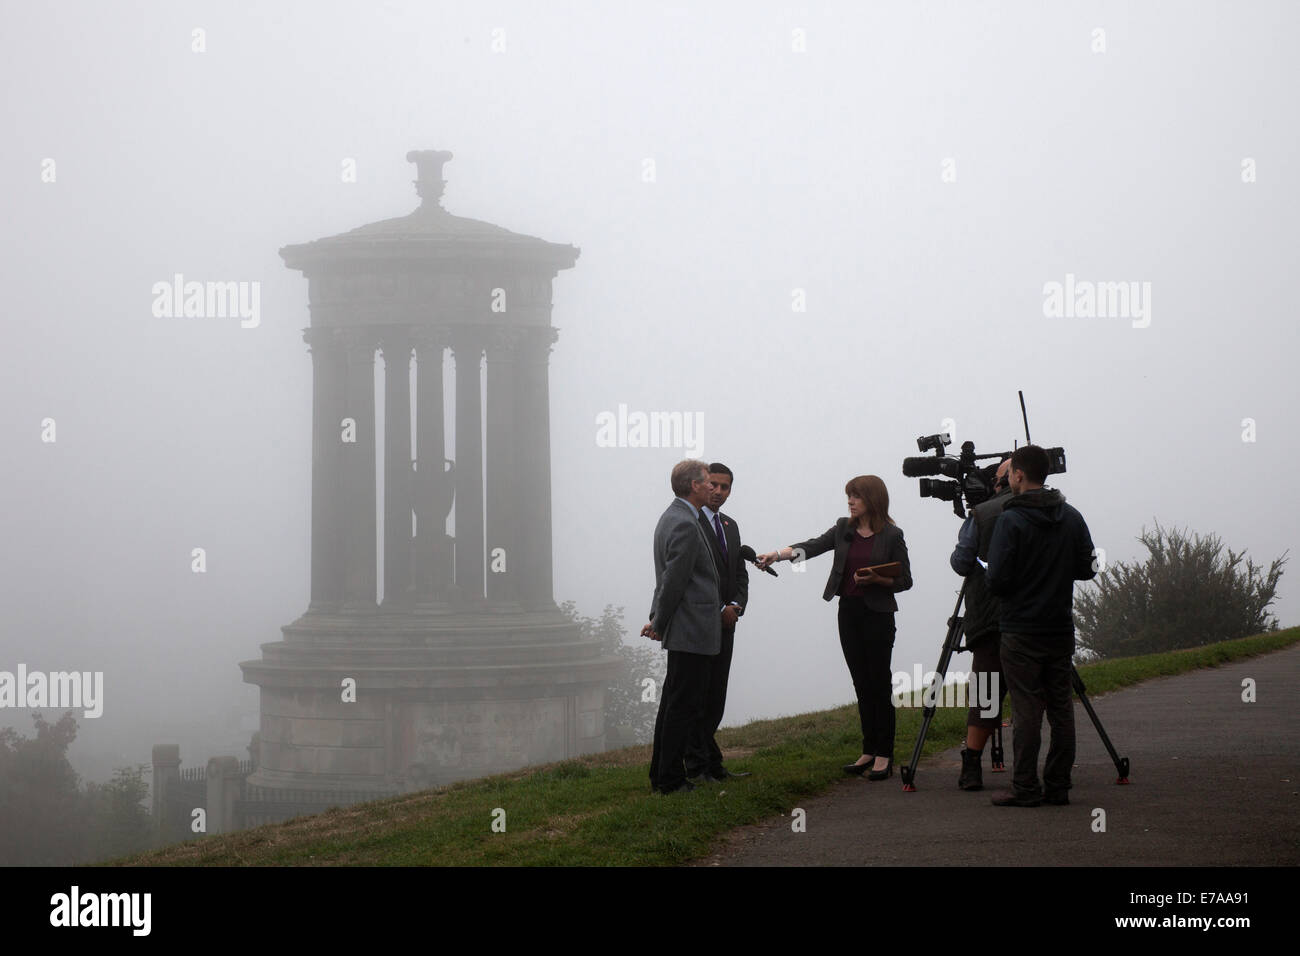 Edinburgh, Scotland, UK. 11th Sept. 2014. Scottish Independence Referendum weather, the big guns from Westminster - Stock Image